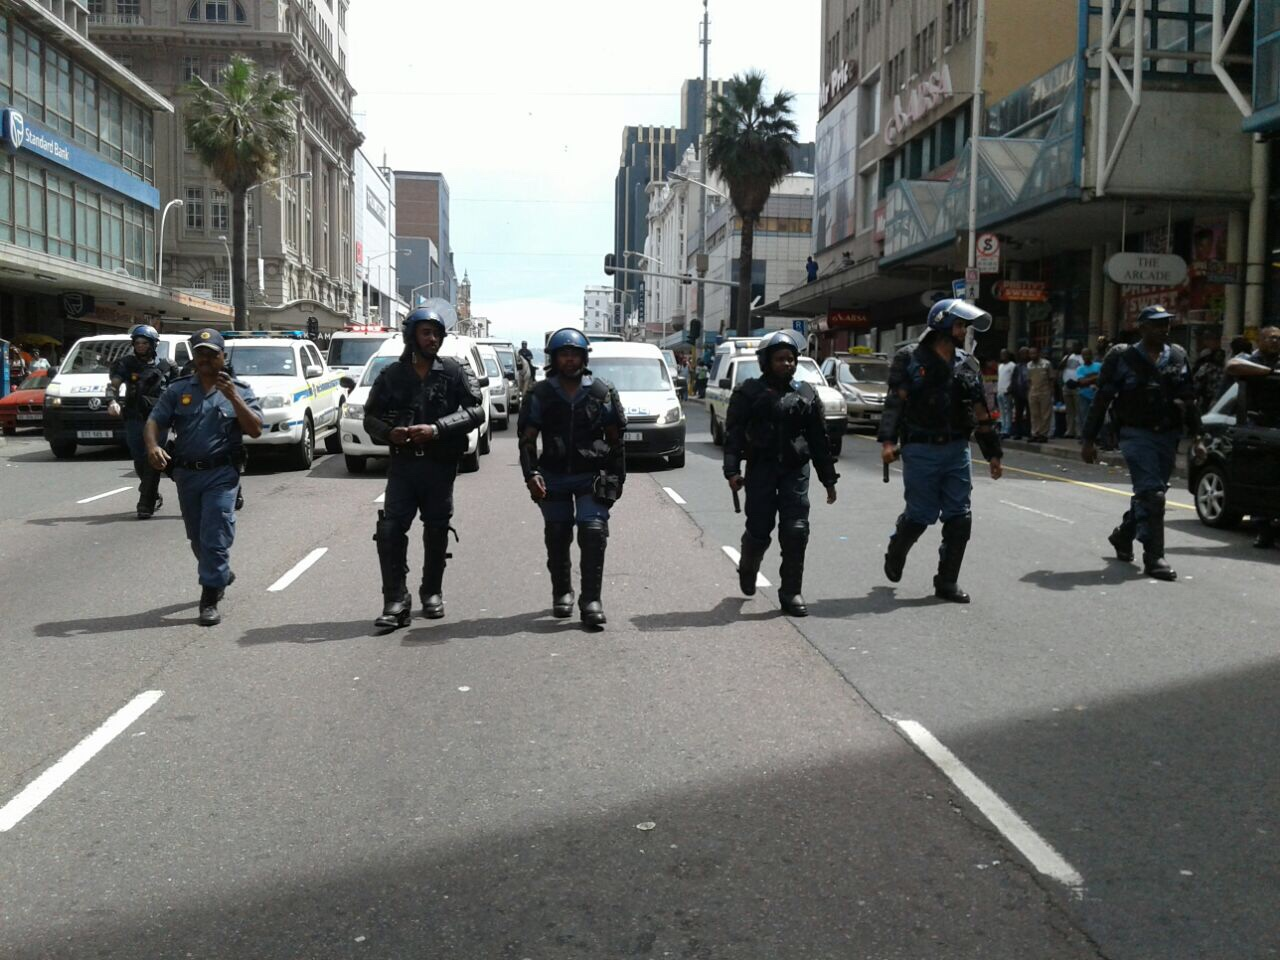 Police escorting students to City Hall. #KZNFMF